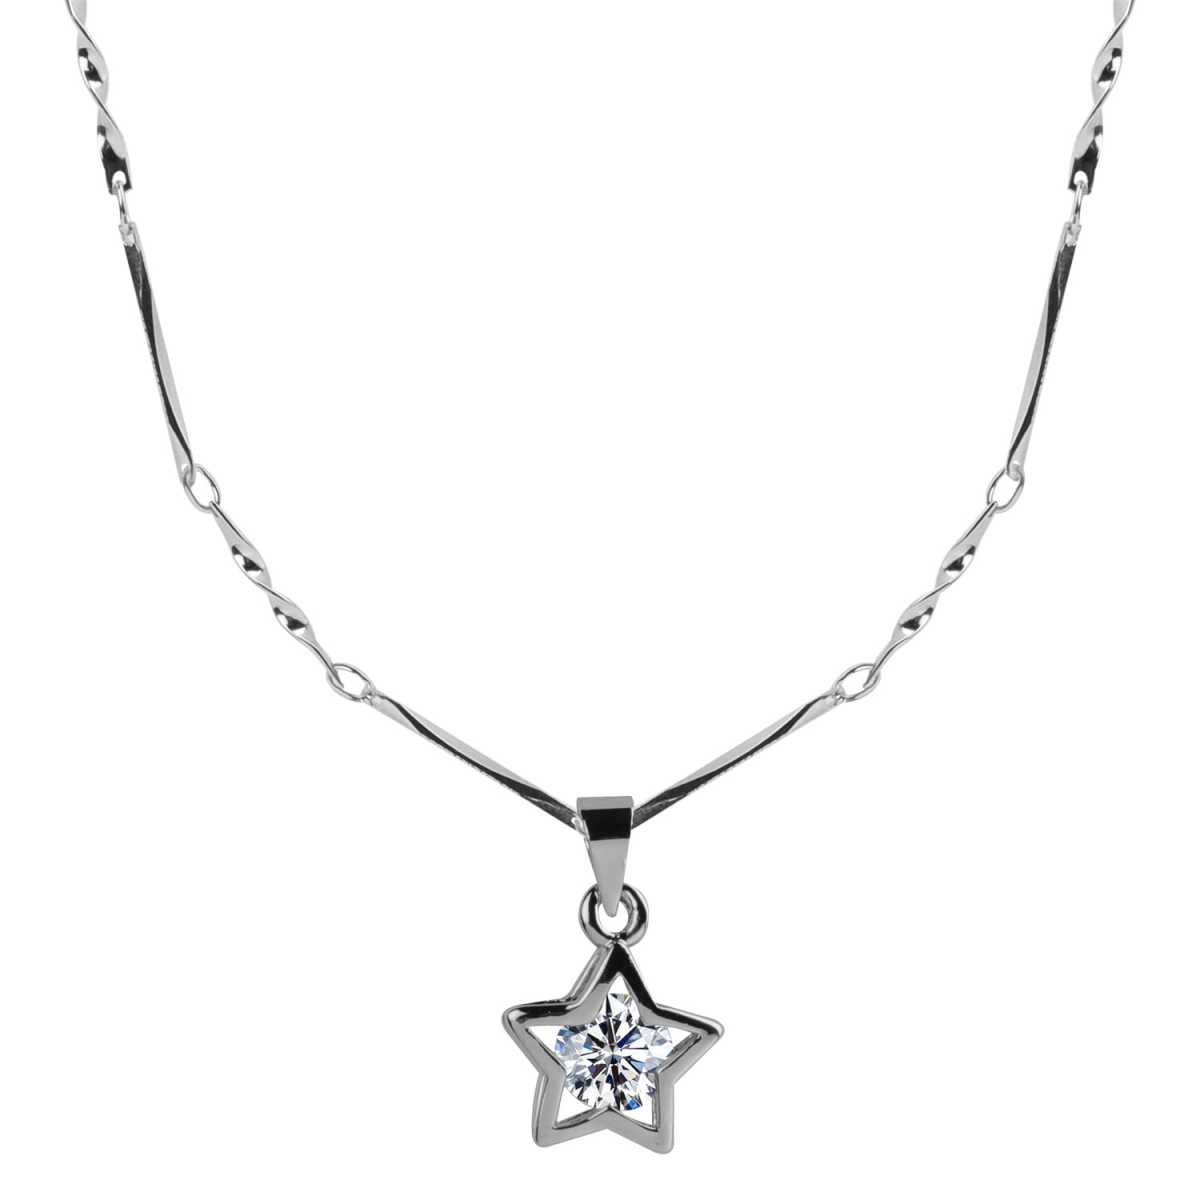 Silver Plated Chain With Solitaire Diamond In  New Look Star Shape Pendant  For Women